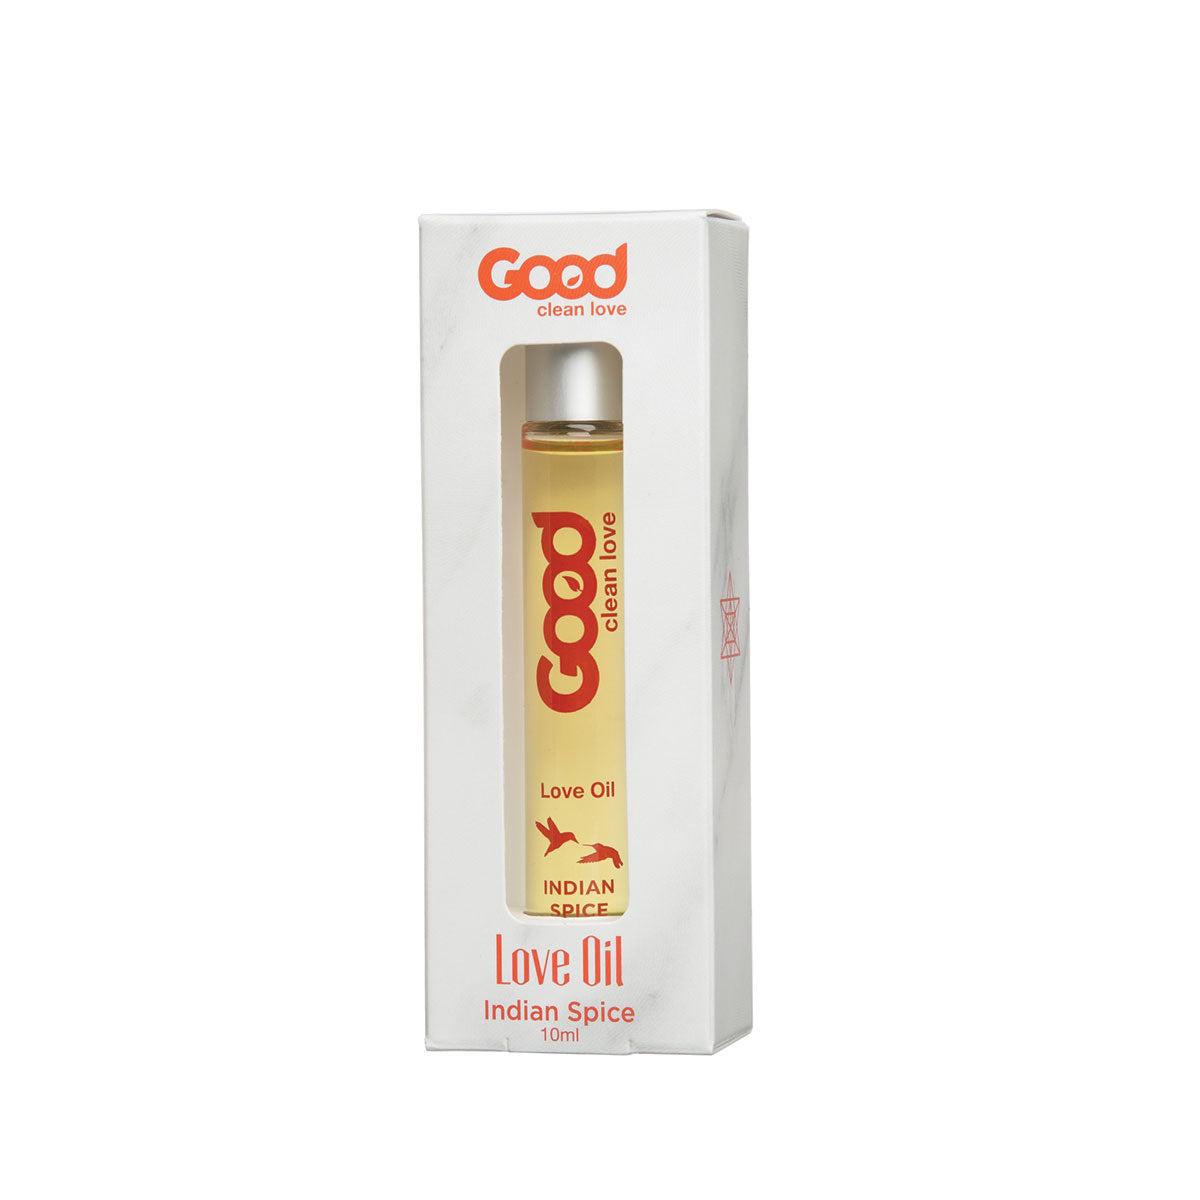 Good Clean Love Oil 10ml - Indian Spice [87006]